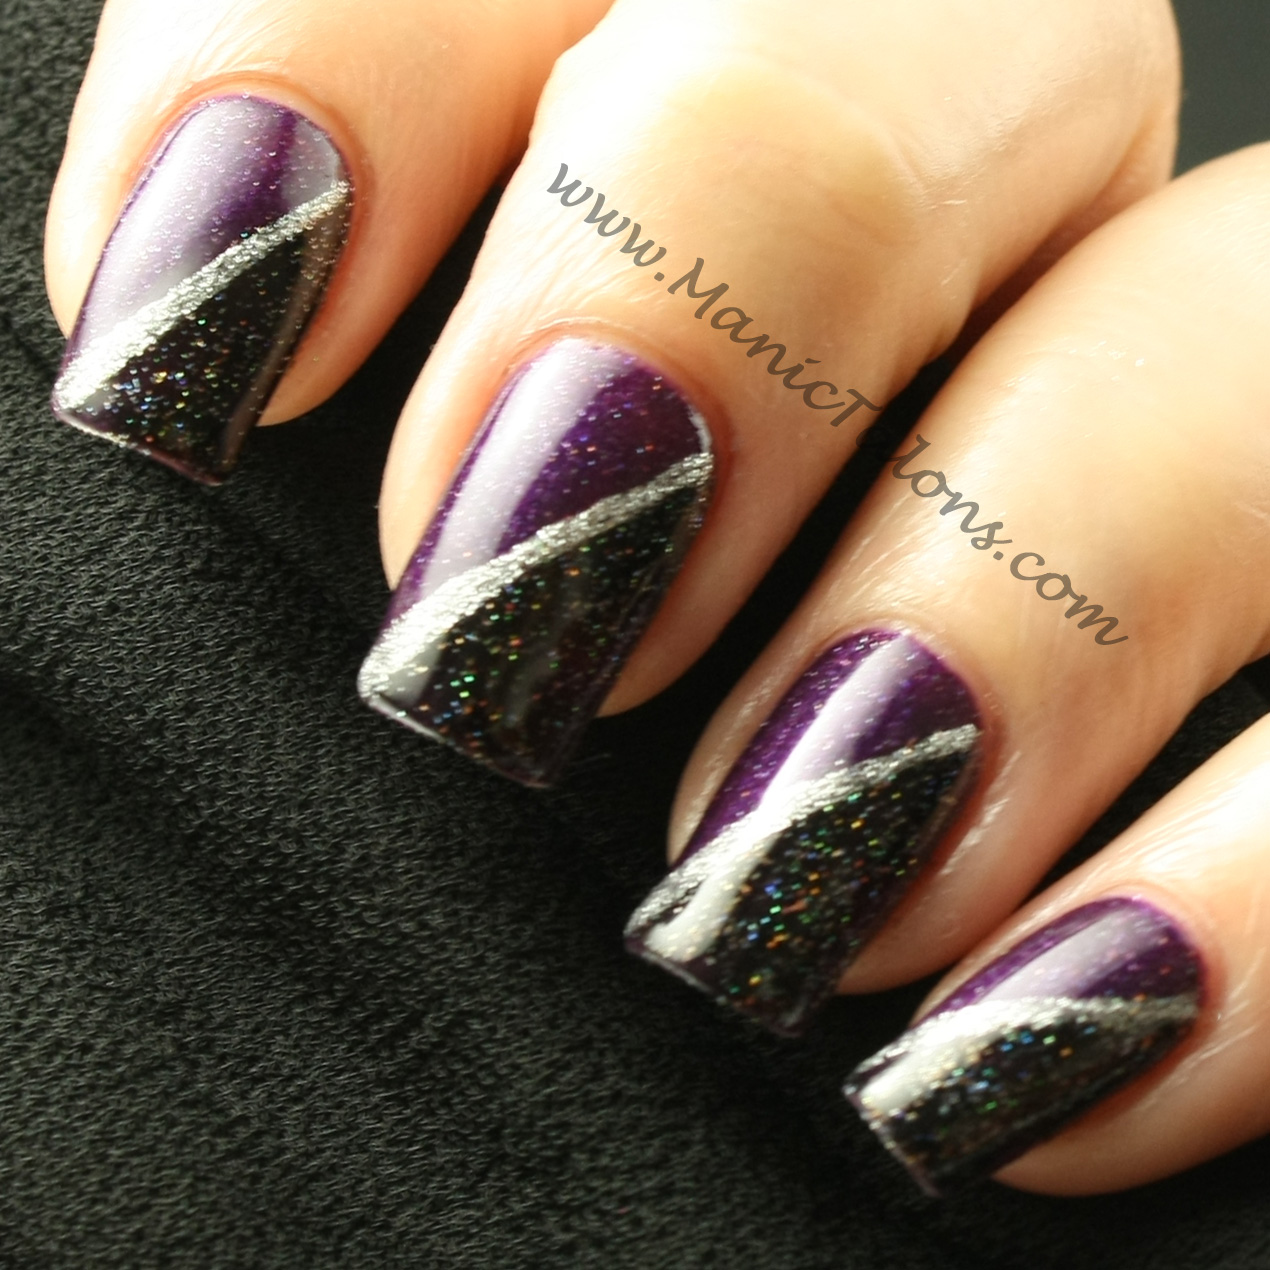 Manic Talons Nail Design Gorgeous Glittery Finishes From Red Carpet